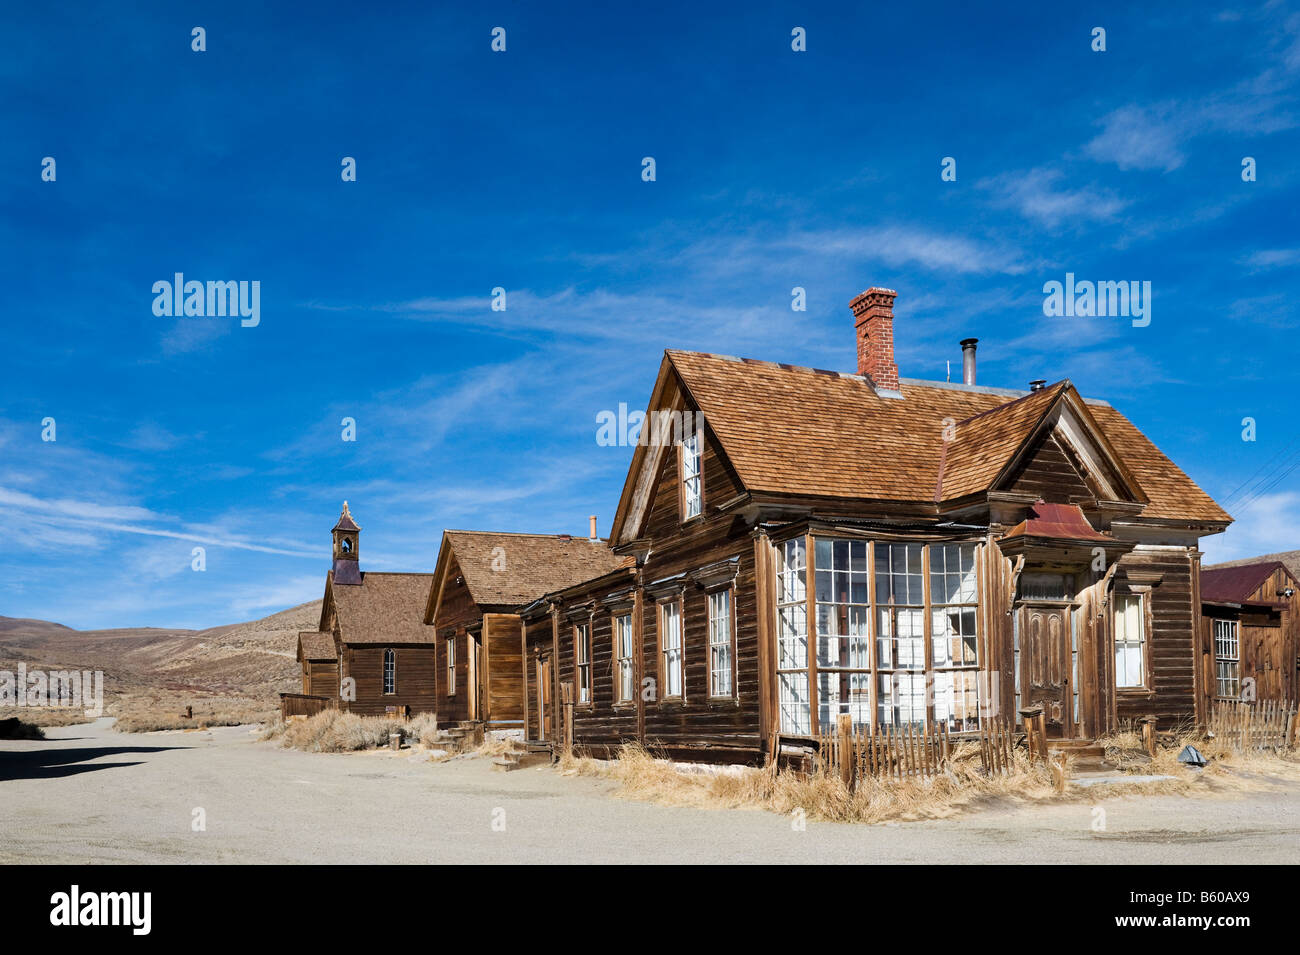 J S Cain House, Green Street, 19thC gold mining ghost town of Bodie near Bridgeport, Sierra Nevada Mountains, California, - Stock Image